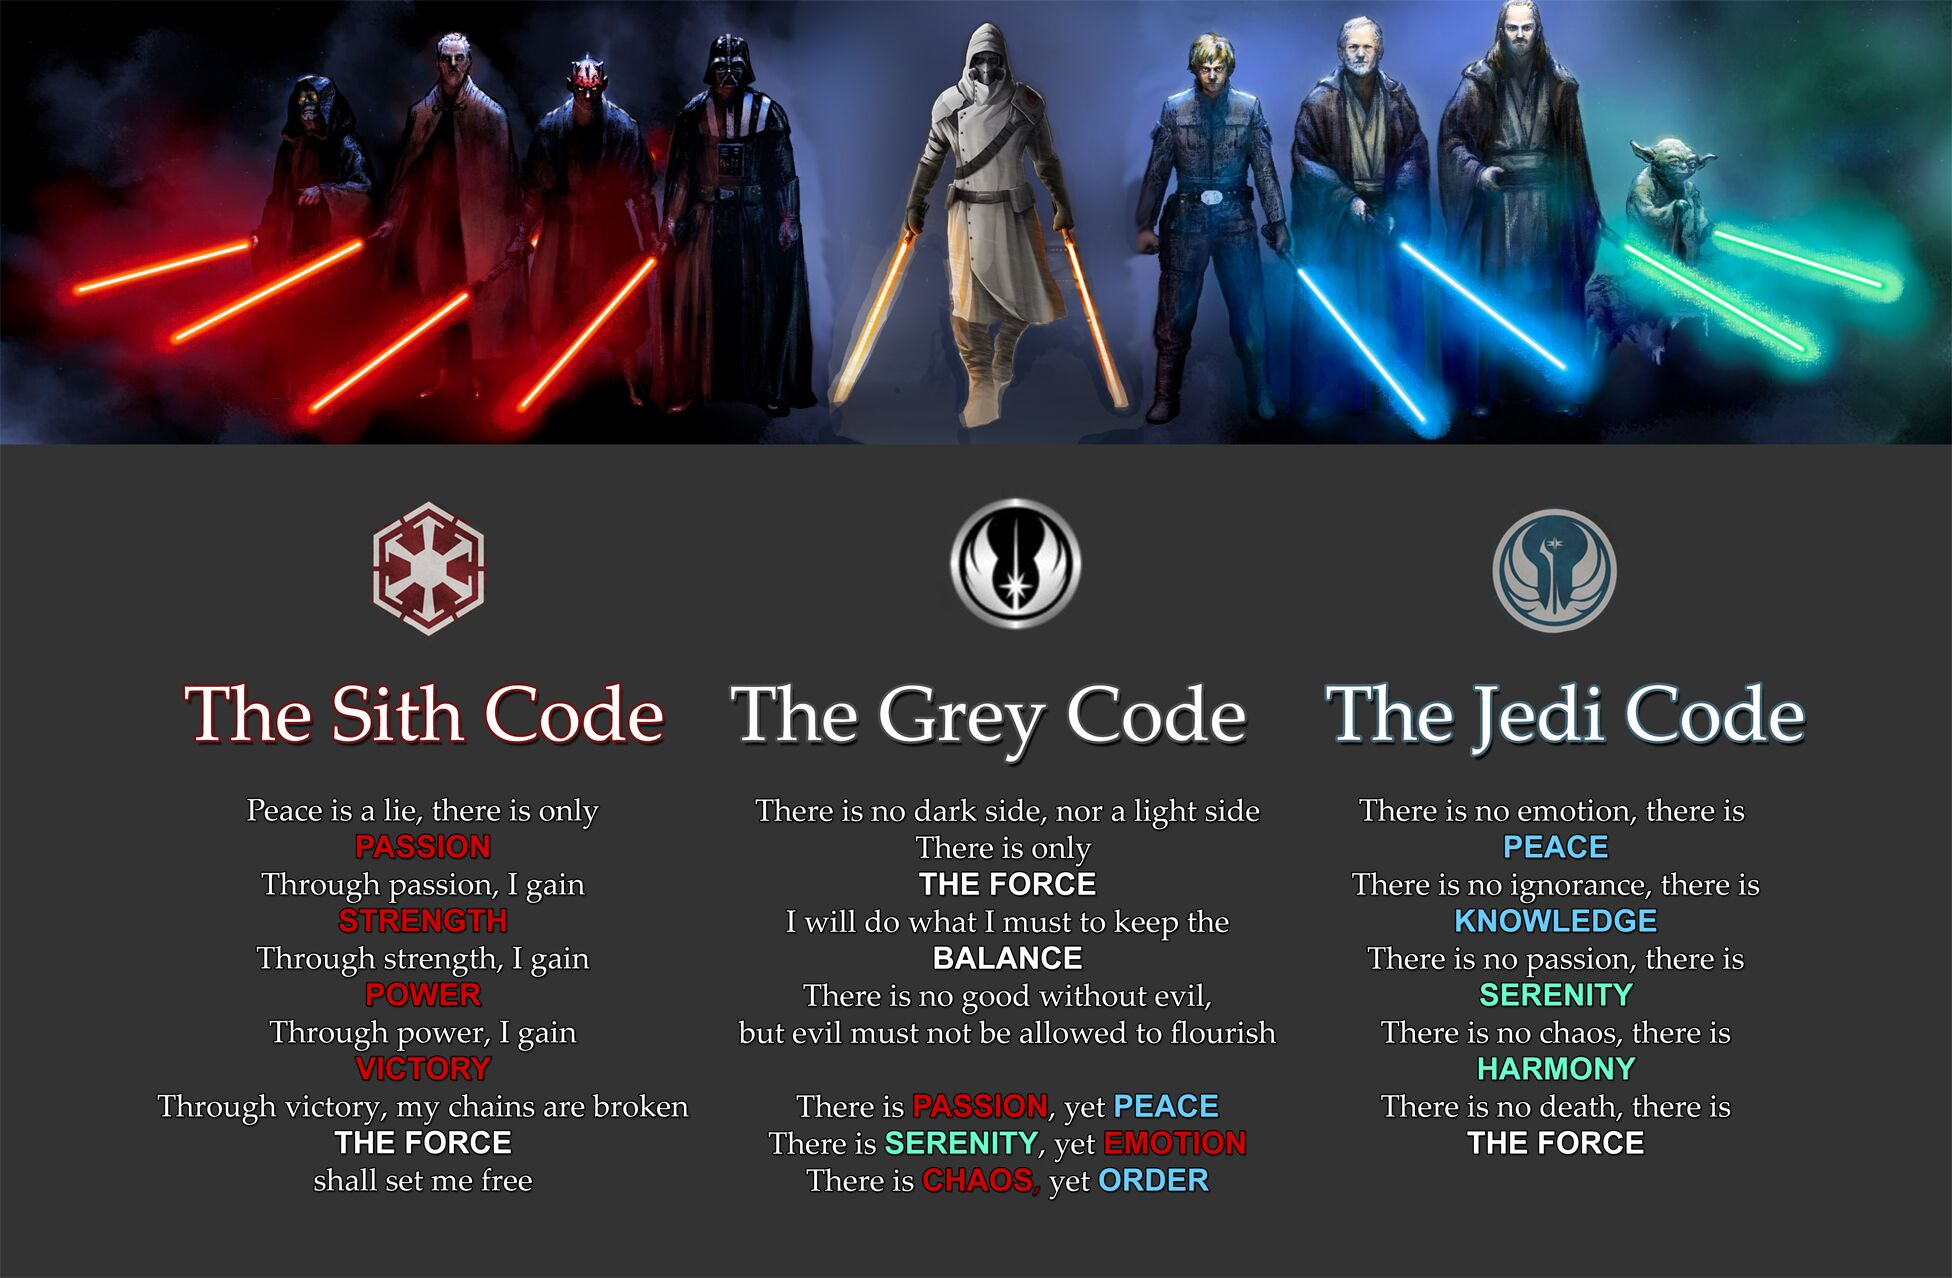 Star wars live fire how to enter codes